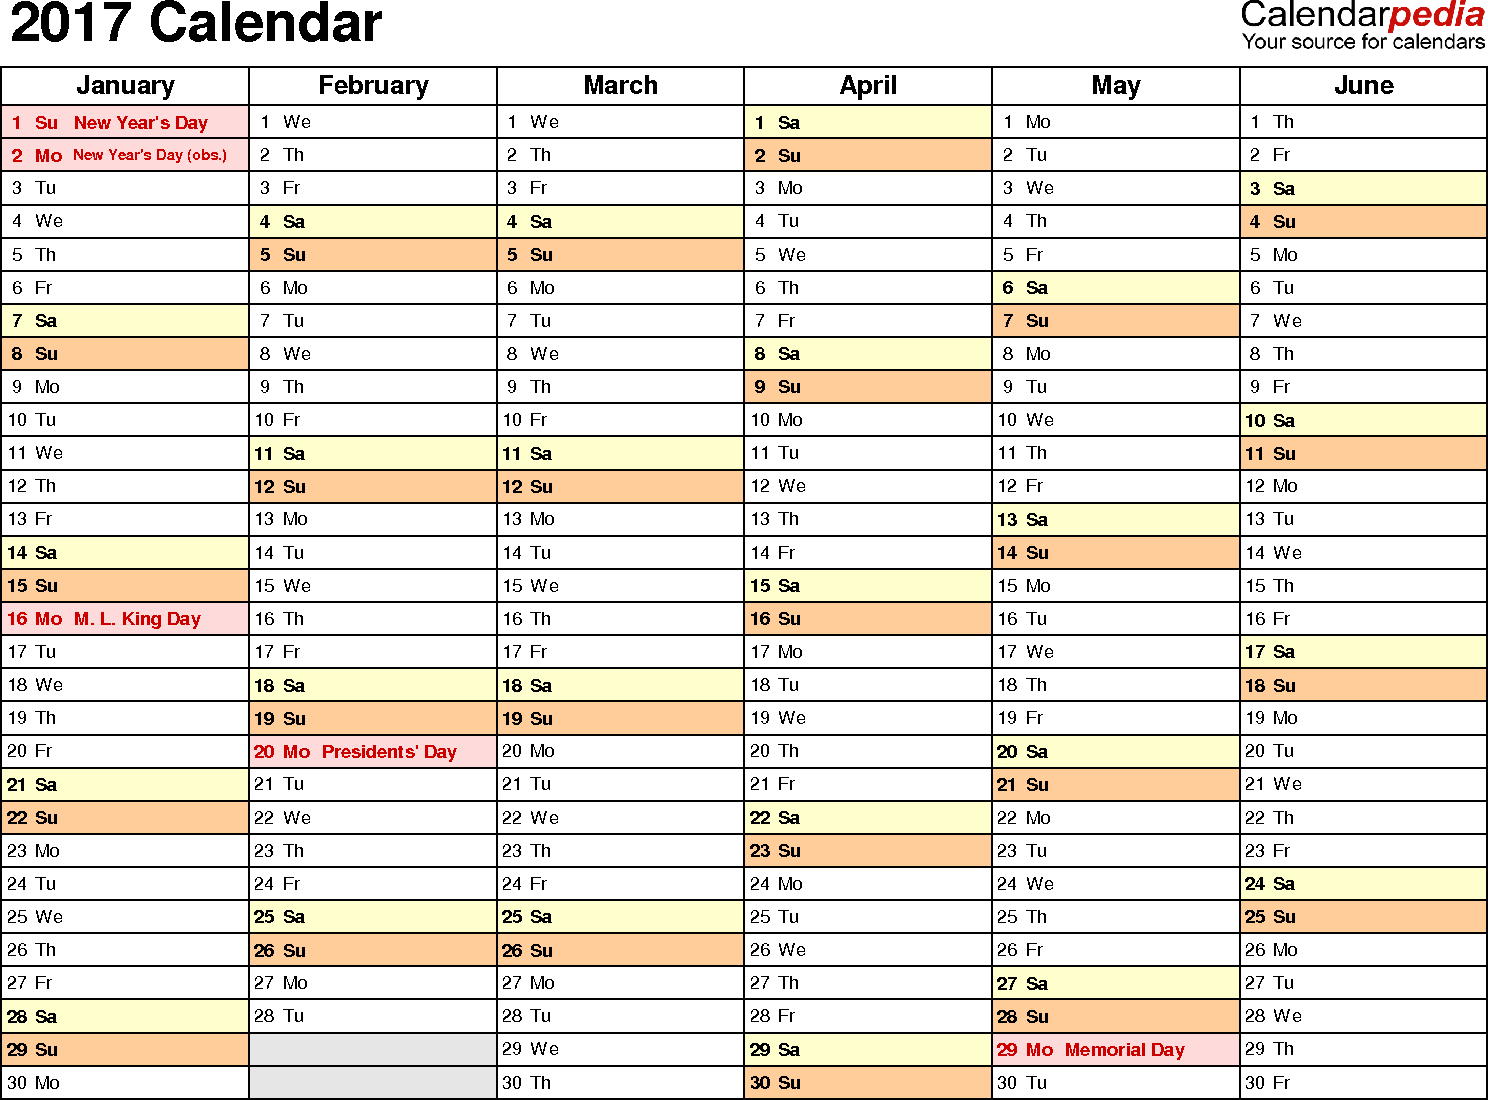 Ediblewildsus  Pretty  Calendar Excel  My Cms With Handsome Template   Calendar For With Extraordinary Formula For Percent Increase In Excel Also Save Excel With Password In Addition Excel Nslookup And Sum By Color Excel As Well As Project Management Templates Excel Free Download Additionally Gillette Sensor Vs Sensor Excel From Abefendicafecom With Ediblewildsus  Handsome  Calendar Excel  My Cms With Extraordinary Template   Calendar For And Pretty Formula For Percent Increase In Excel Also Save Excel With Password In Addition Excel Nslookup From Abefendicafecom